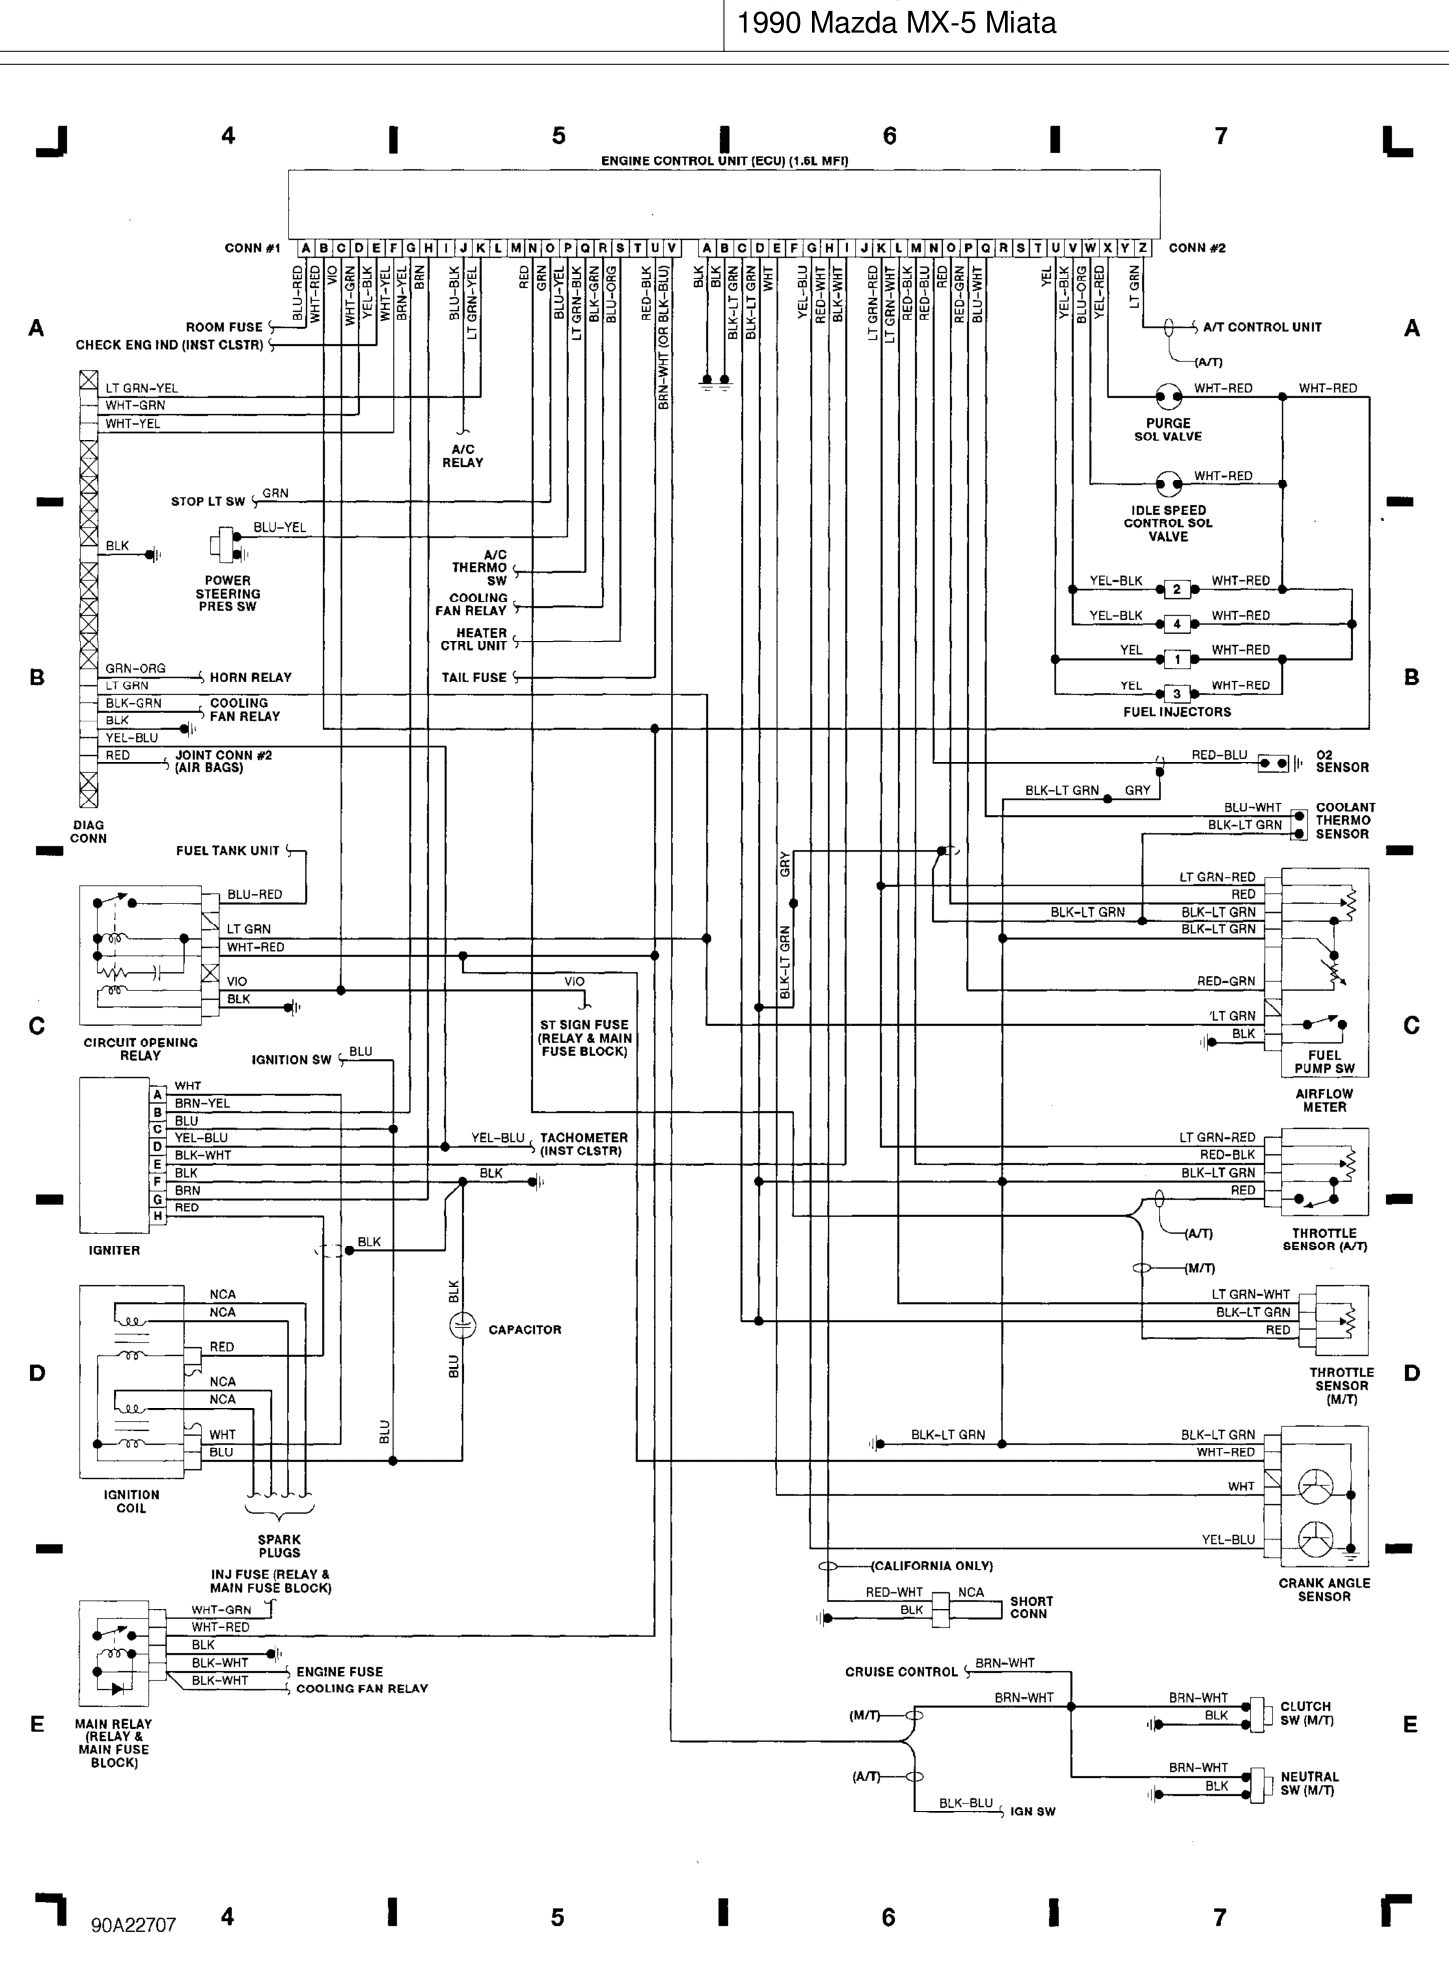 1990 Miata Engine Diagram. Diagrams. Auto Parts Catalog